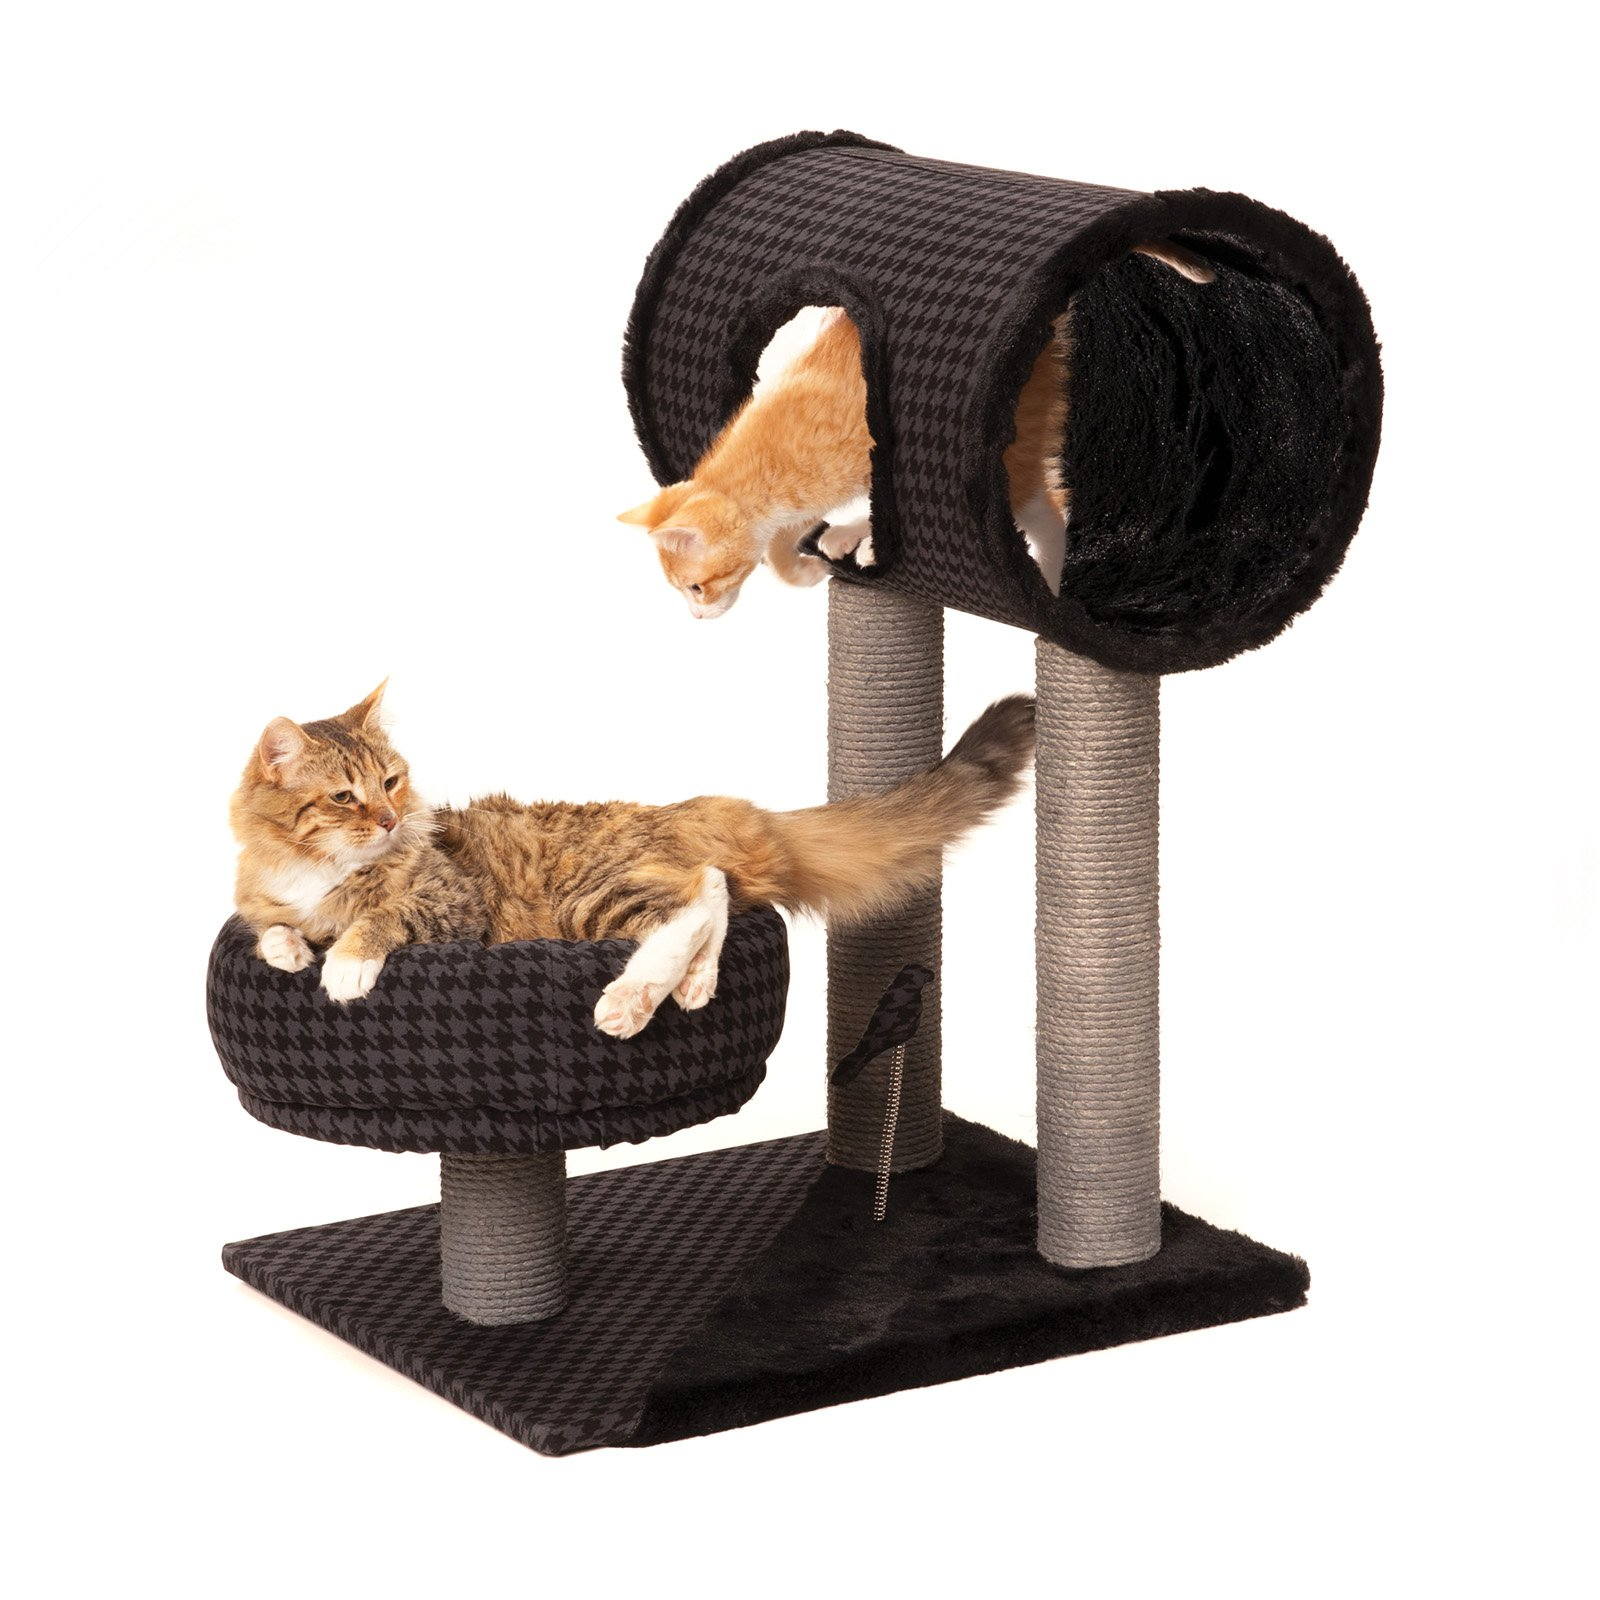 Max and Marlow Sisal Cat Tunnel Hut and Lounger